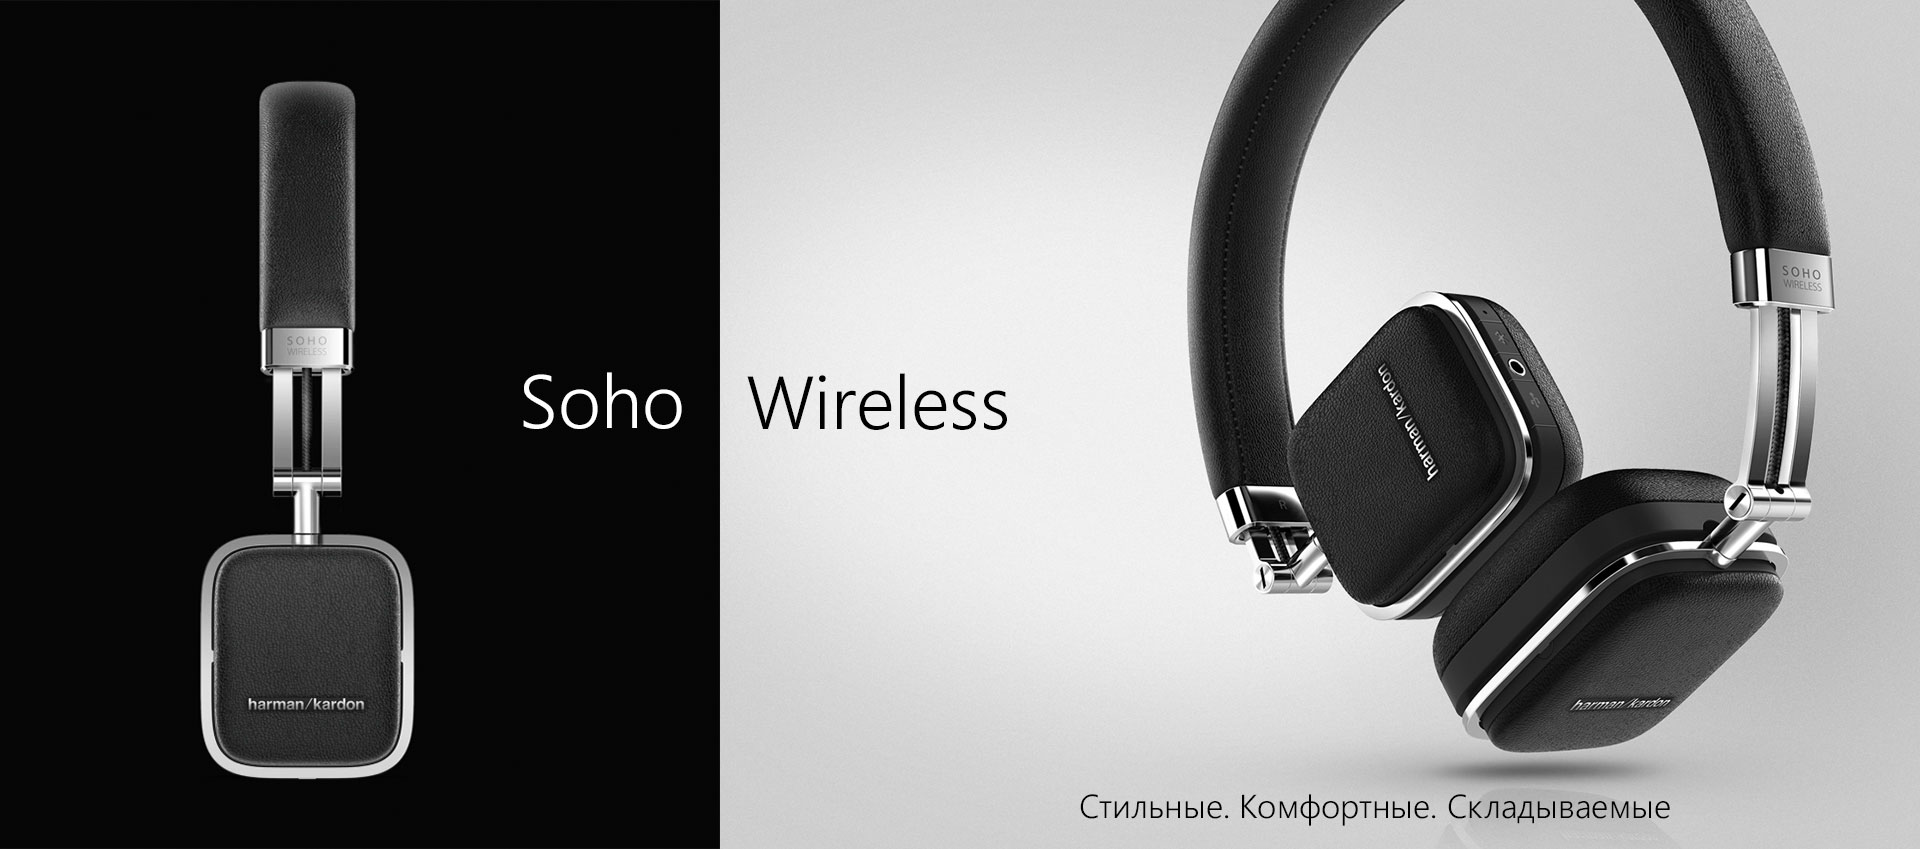 SohoWireless view0